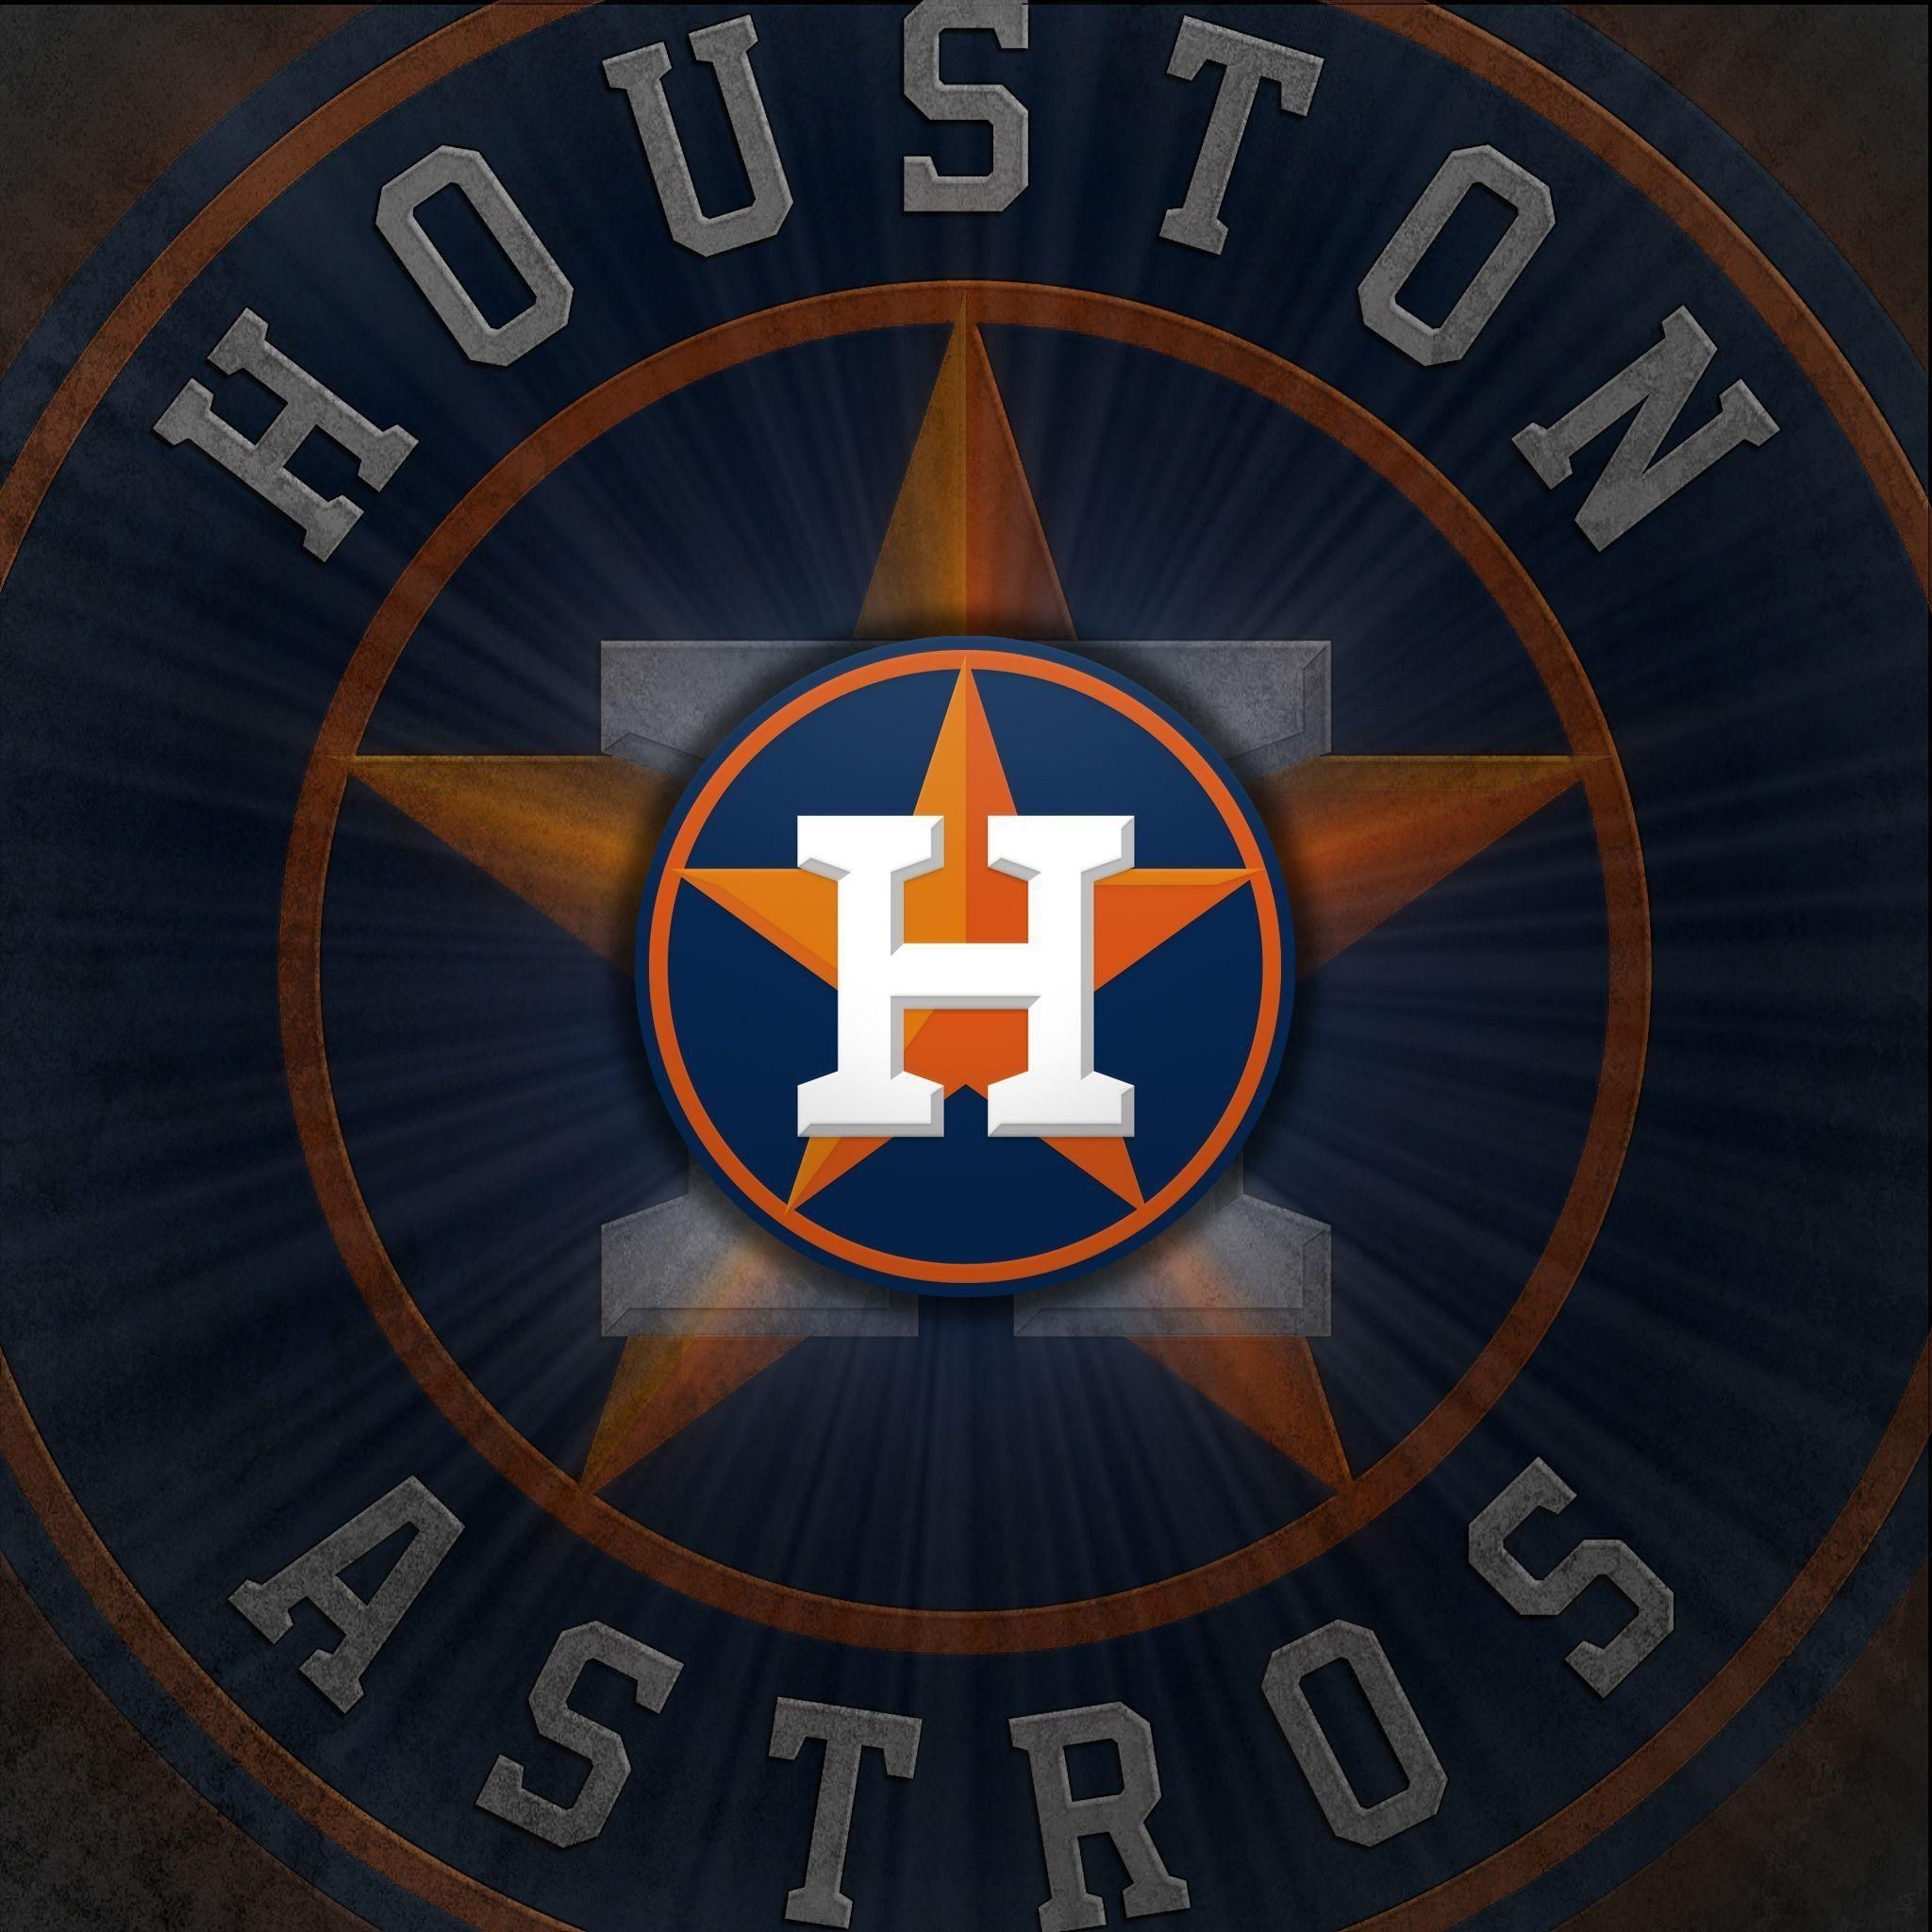 Astros Iphone Wallpaper 588521 Apple Watch Custom Faces Apple Watch Wallpaper Apple Watch Faces